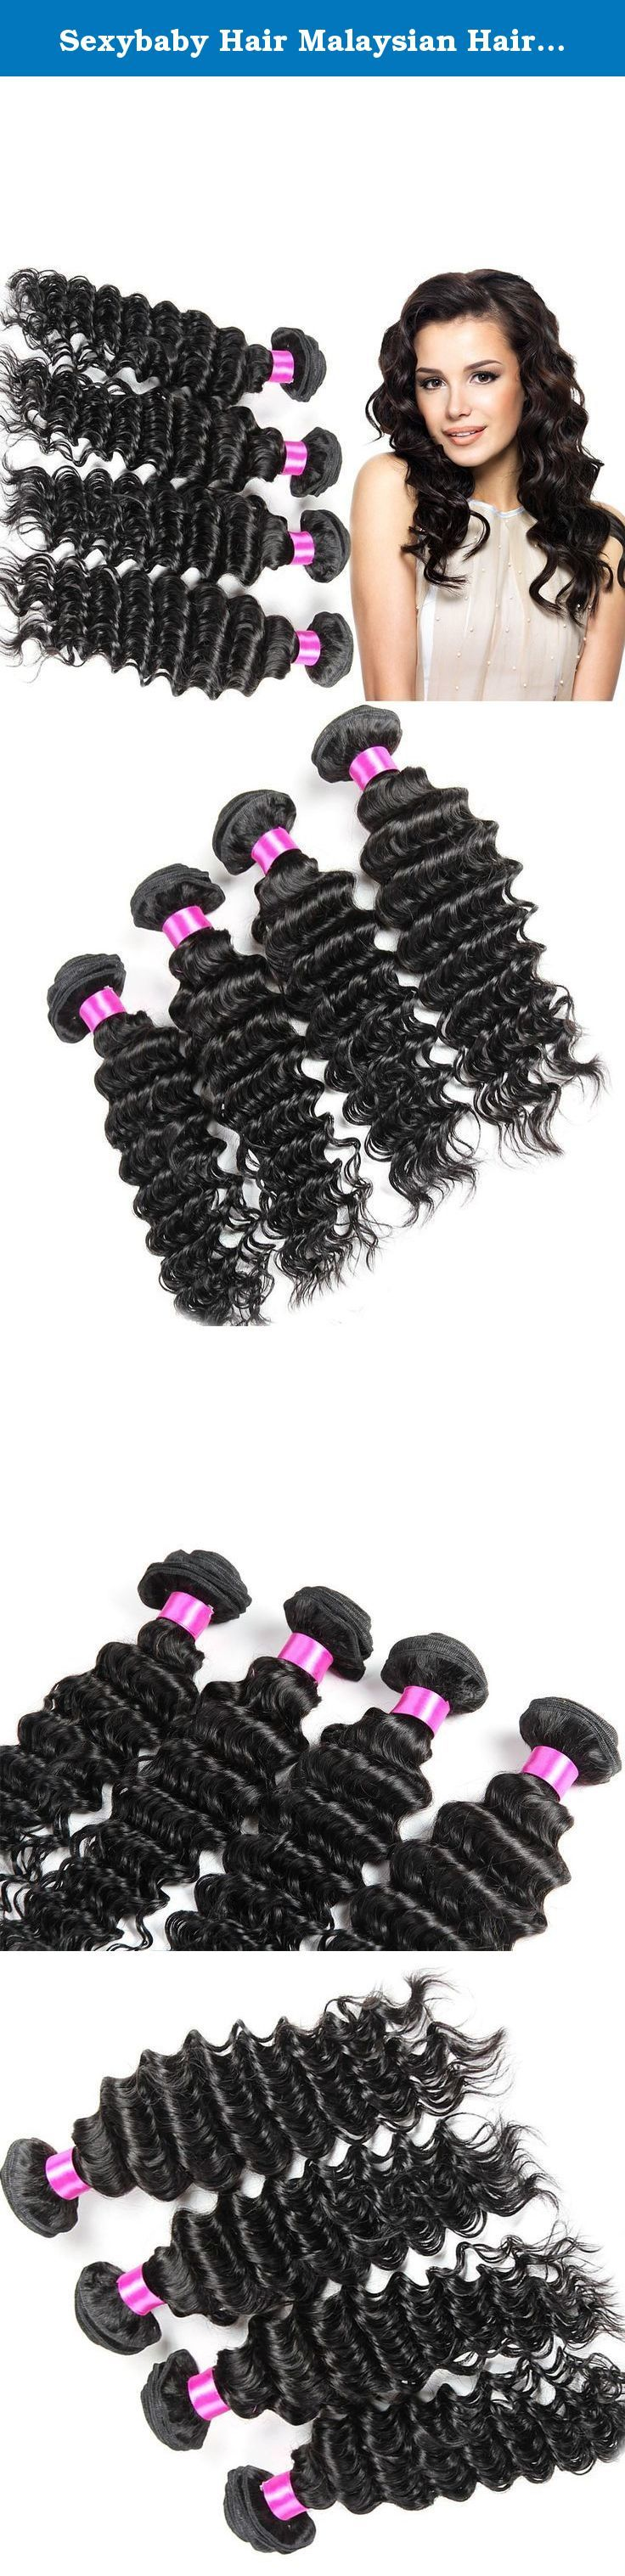 Sexybaby Hair Malaysian Hair 8a Grade 4 Bundles 100% Weft Real Virgin Human Hair Extensions Deep Wave Unprocessed Natural Black (24 24 26 26).  Hair Extension Type: Weaving  Material: Human Hair  Color Type: Pure Color  Suitable Dying Colors: All Colors  Hair Weft: Machine Double Weft  Can Be Permed: Yes  Chemical Processing: None  Material Grade: Virgin Hair  Net Weight: 95-105g/bundle  Brand Name: SexyBaby Hair  Material: 100% unprocessed virgin human hair  Color: Natural…